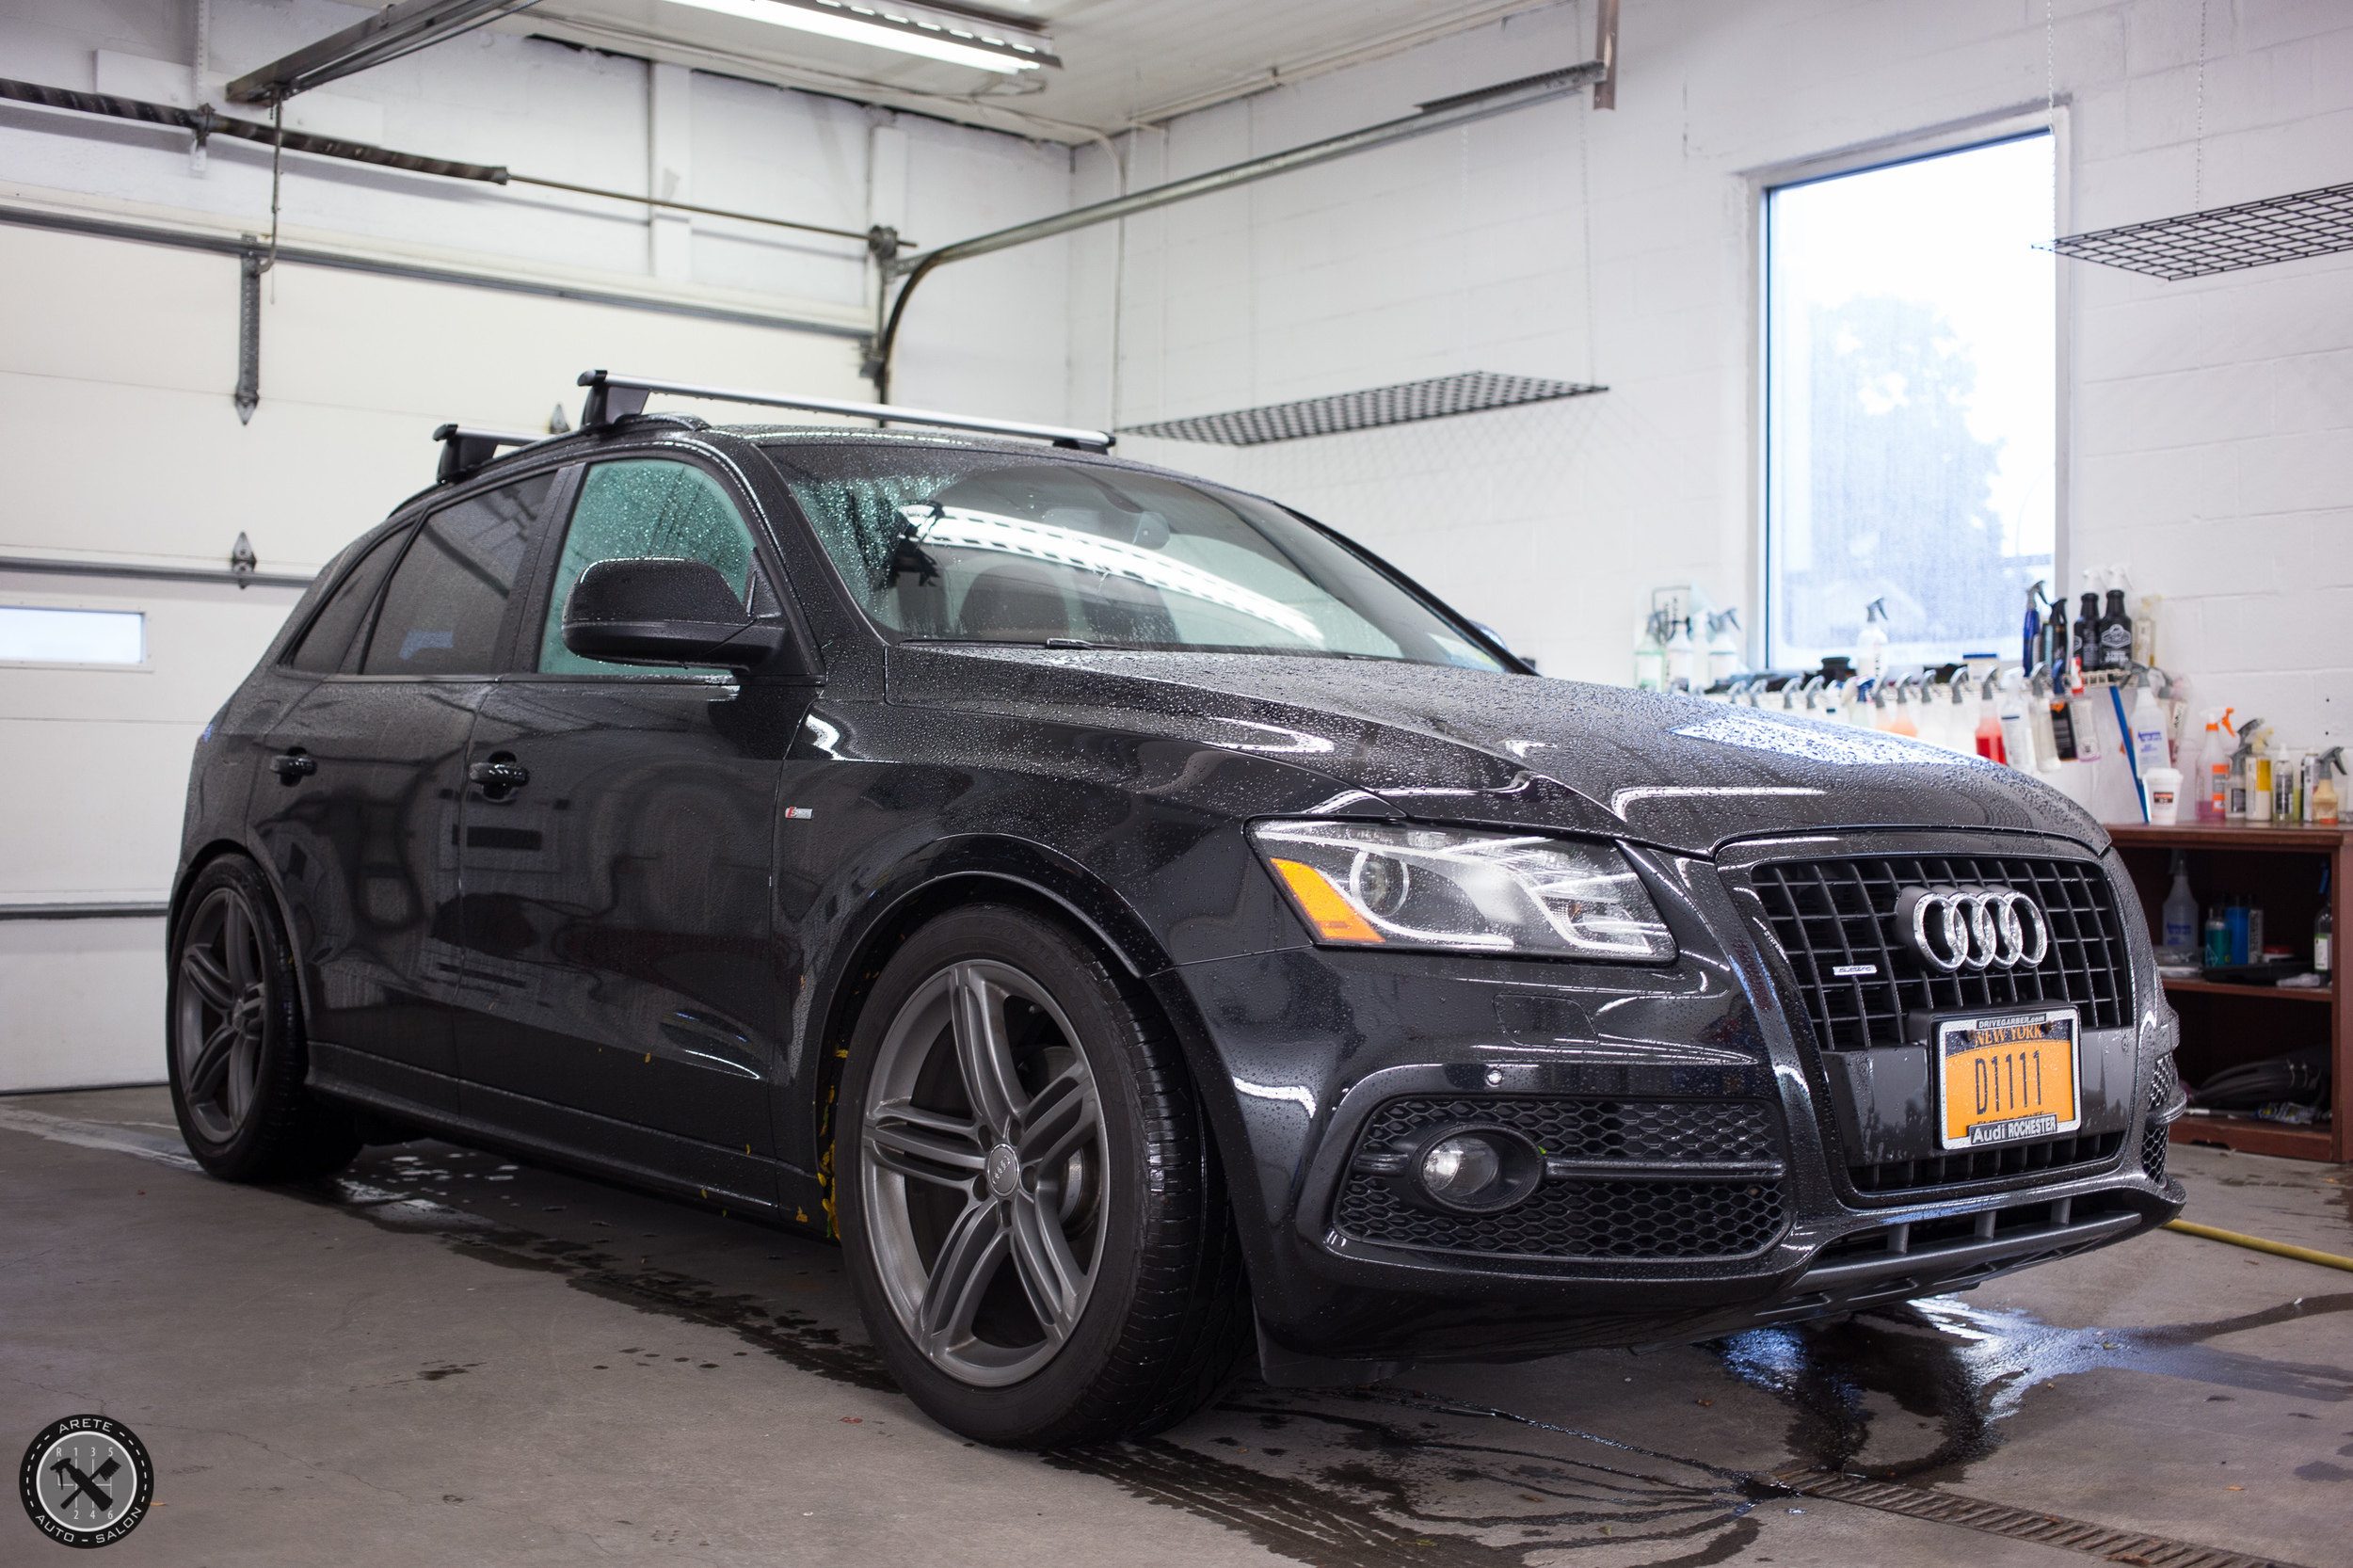 The vehicle came to us on a rainy day and the current protection was doing its job. After our decontamination service the paint will be completely bare,allowing us to view defects objectively as well as create an ideal environment for correction to occur.